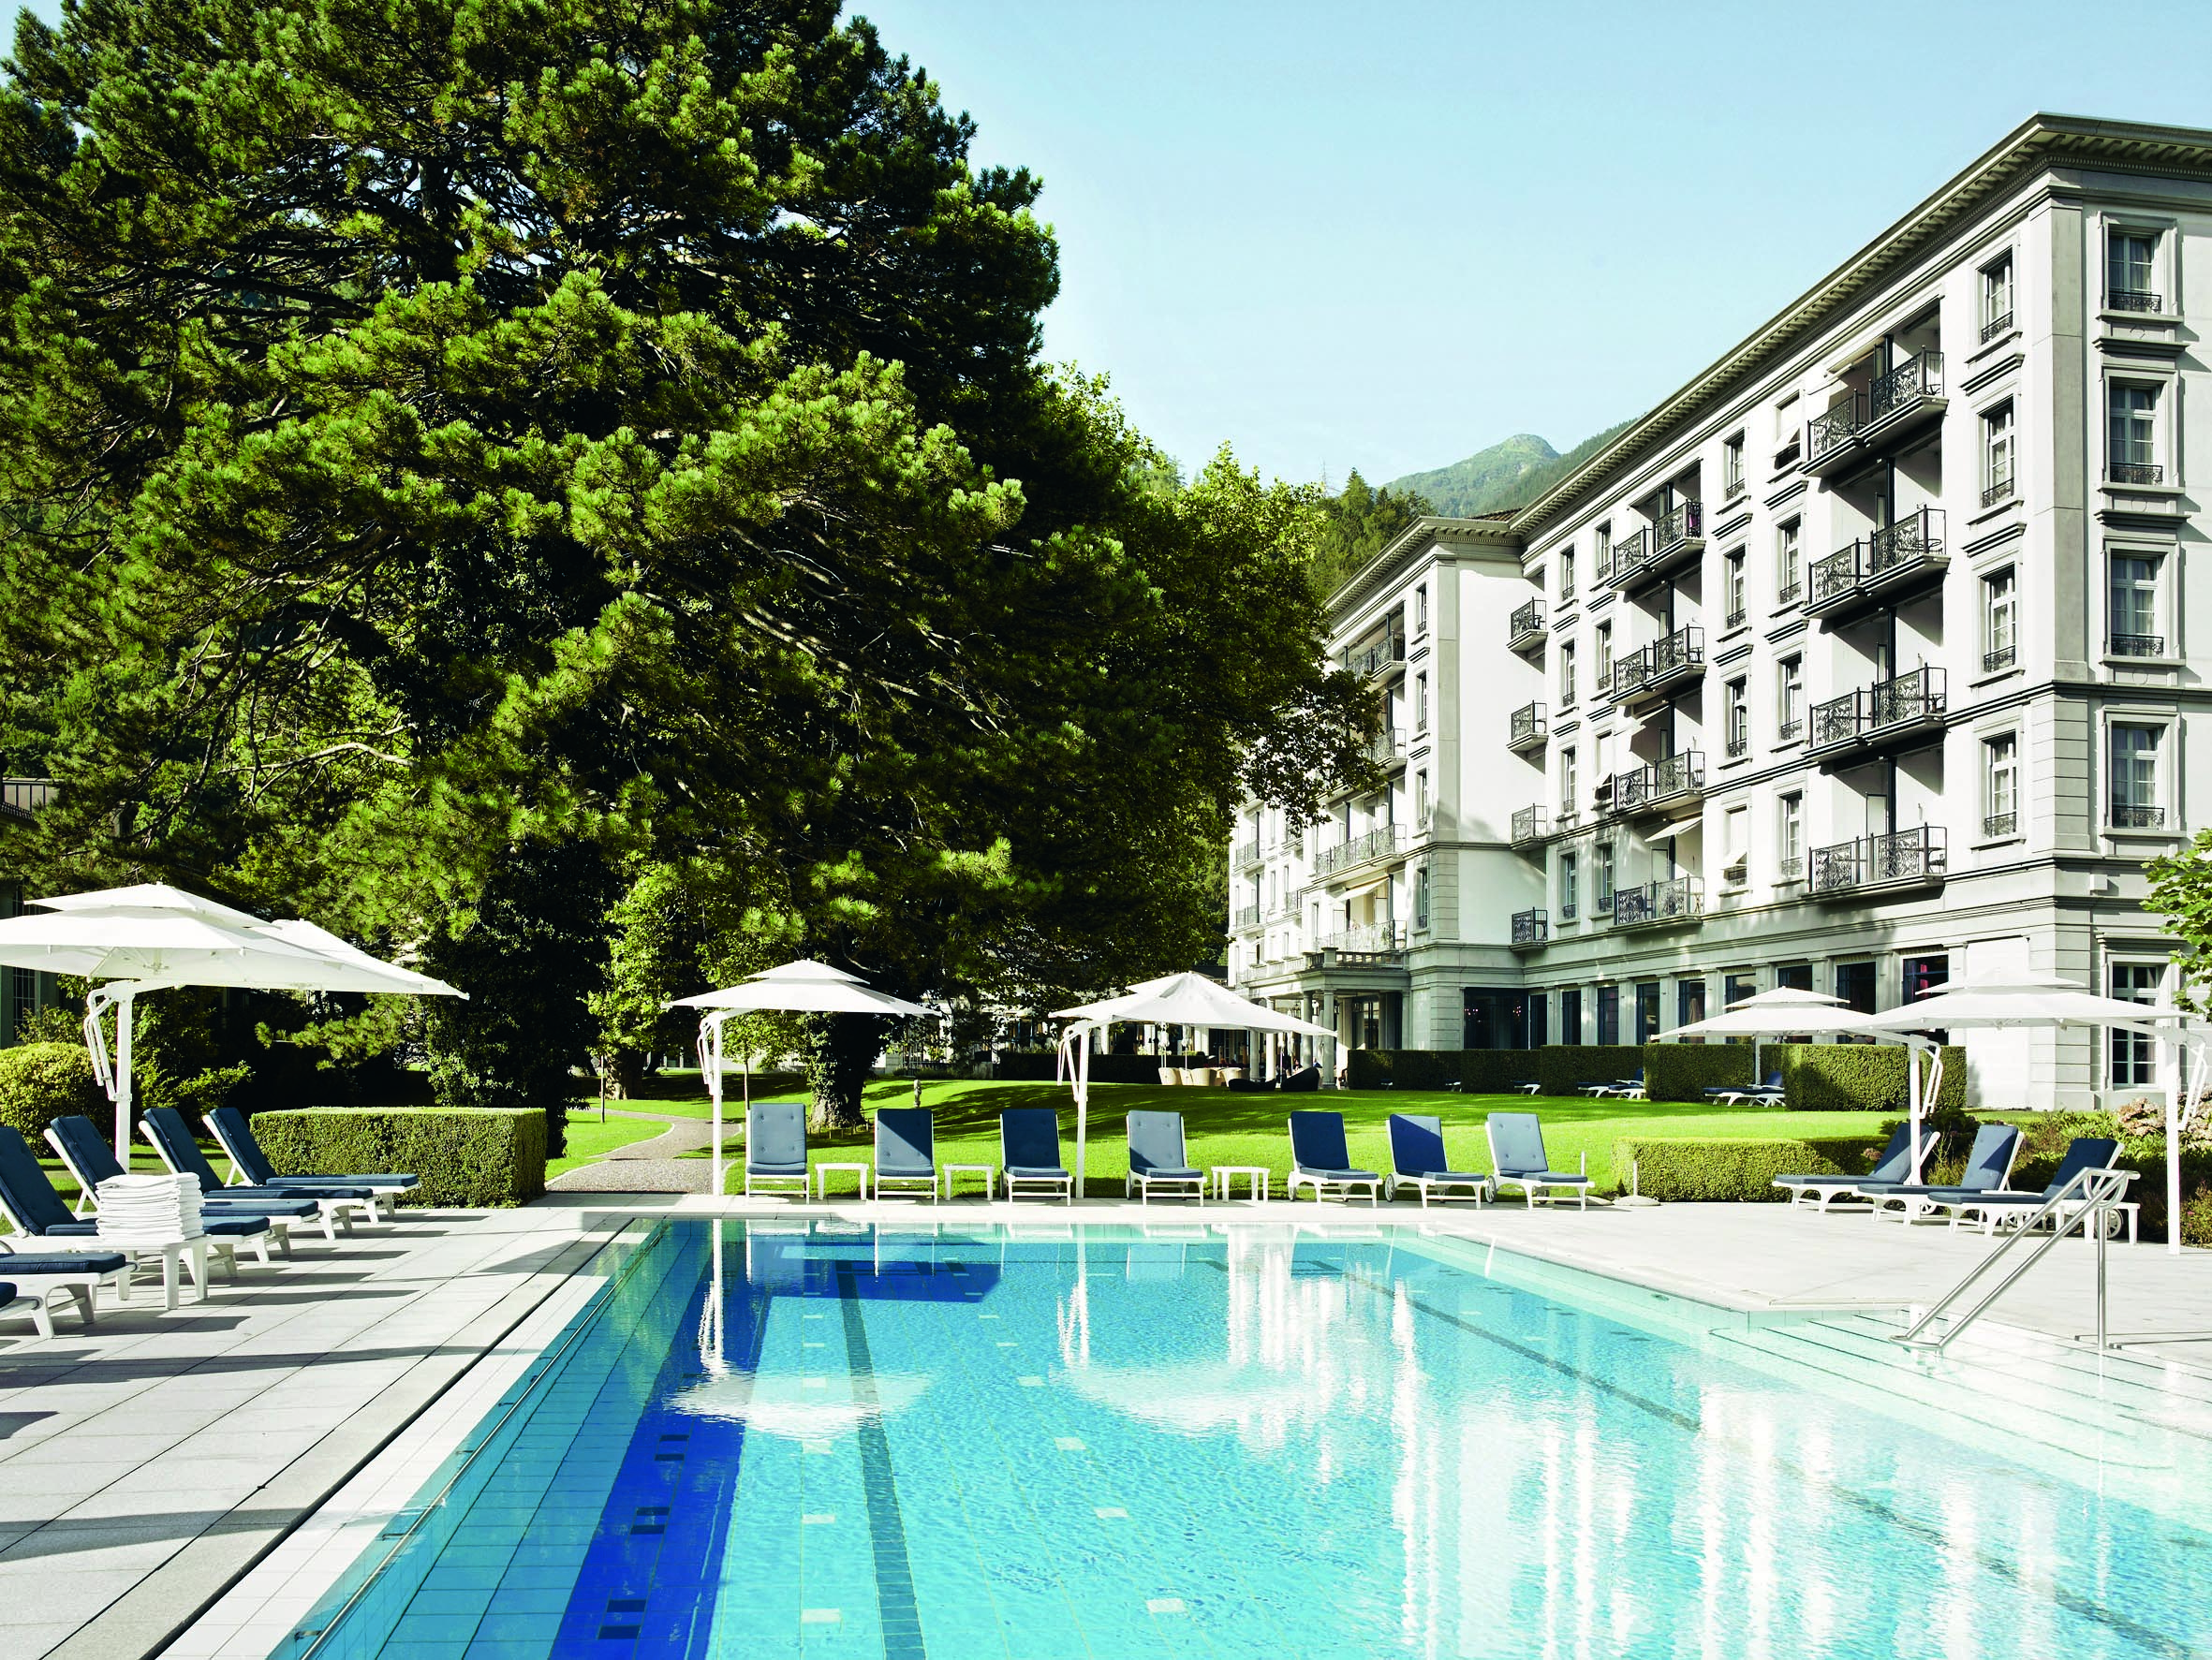 10 Best Social Distancing Wellness Holidays to Boost Immunity - Grand Resort Bad Ragaz, Switzerland